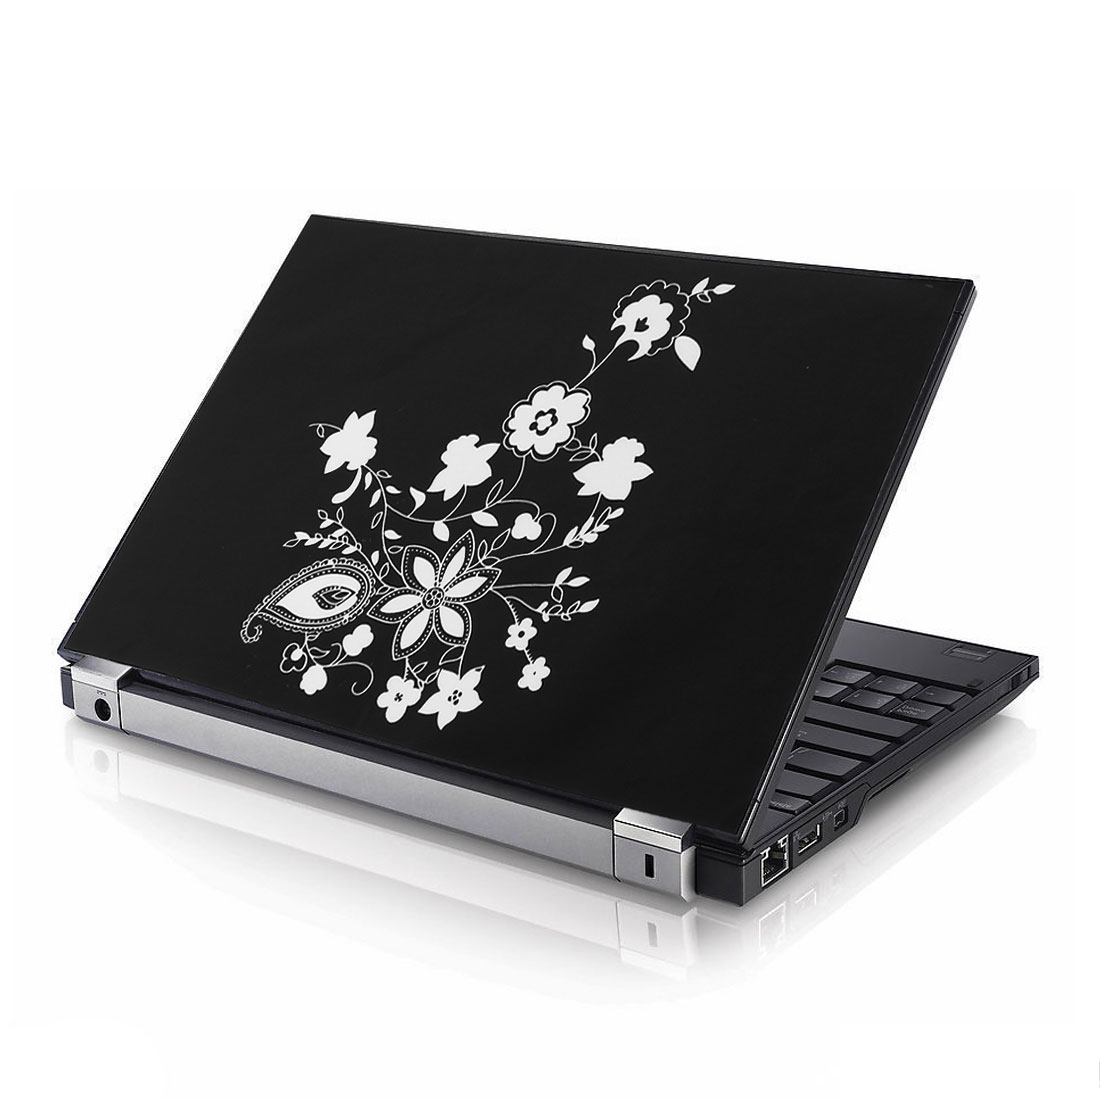 "15.6"" 15"" Floral Laptop Notebook Decal Sticker Cover Protector Skin Black White"